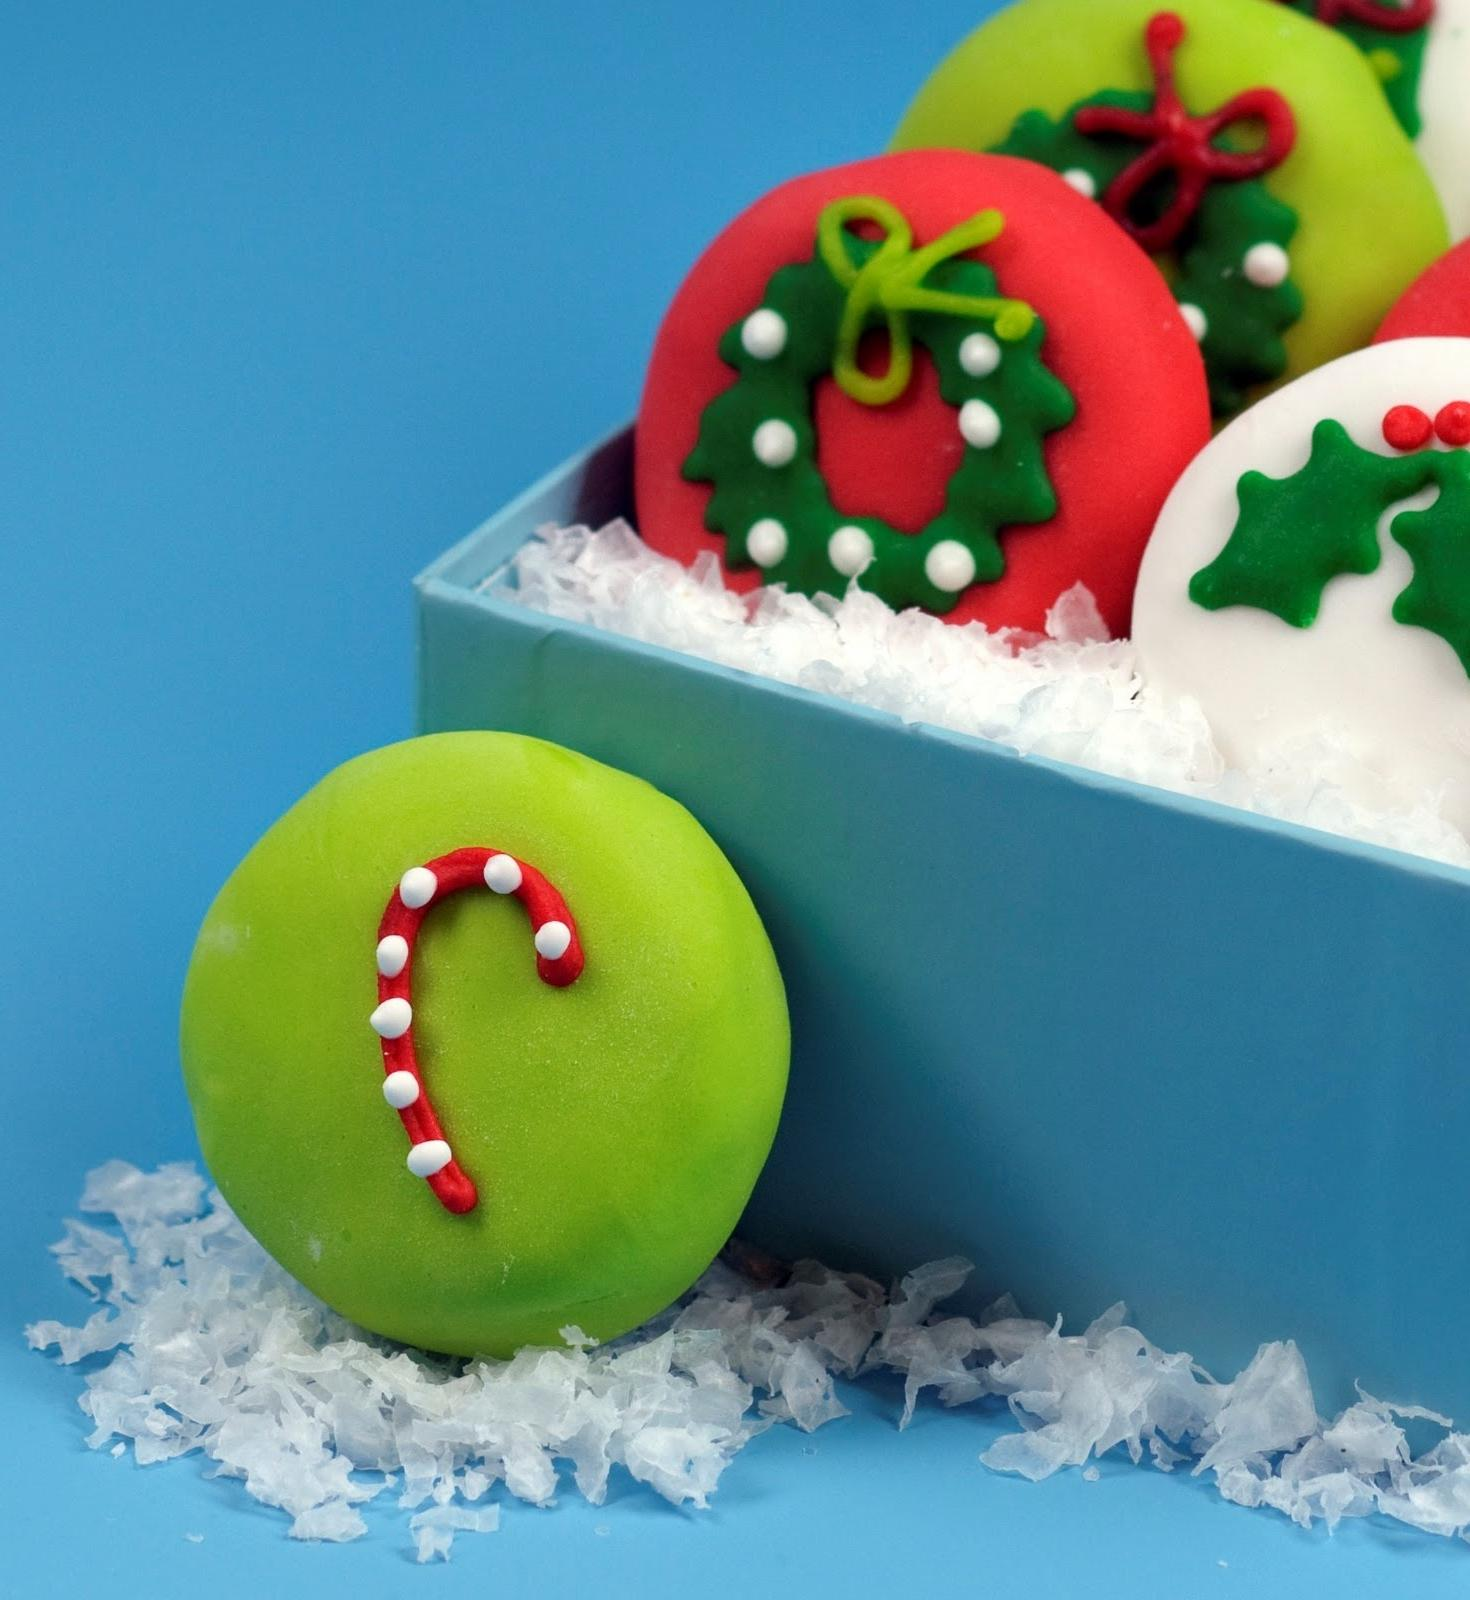 of Christmas Petits Fours,